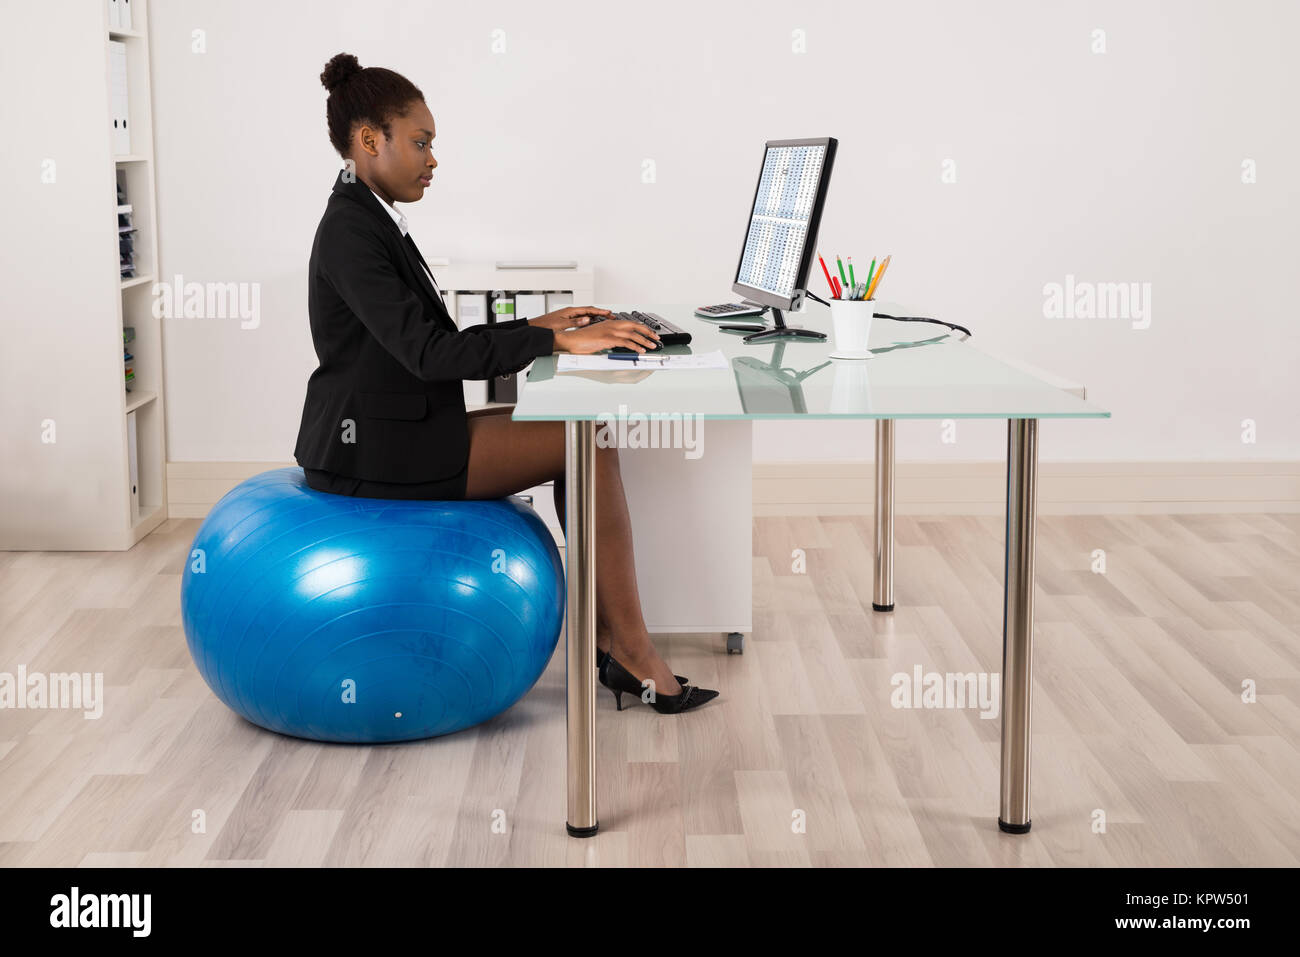 Businesswoman Sitting On Fitness Ball In Office - Stock Image